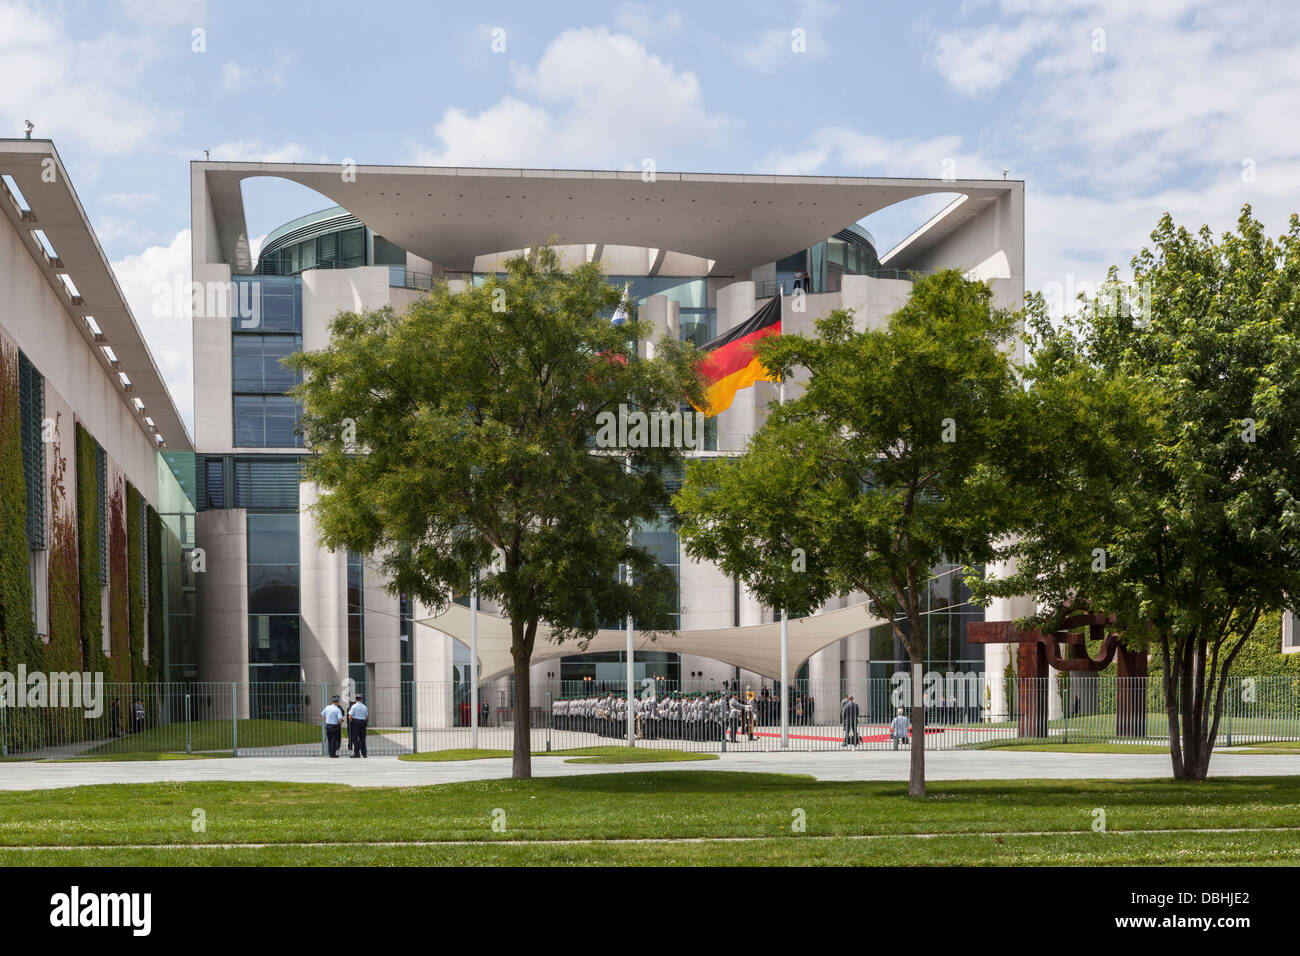 The Wachbataillon parades  in front of the new glass and concrete Chancellery building (Bundeskanzleramt) - Berlin - Stock Image